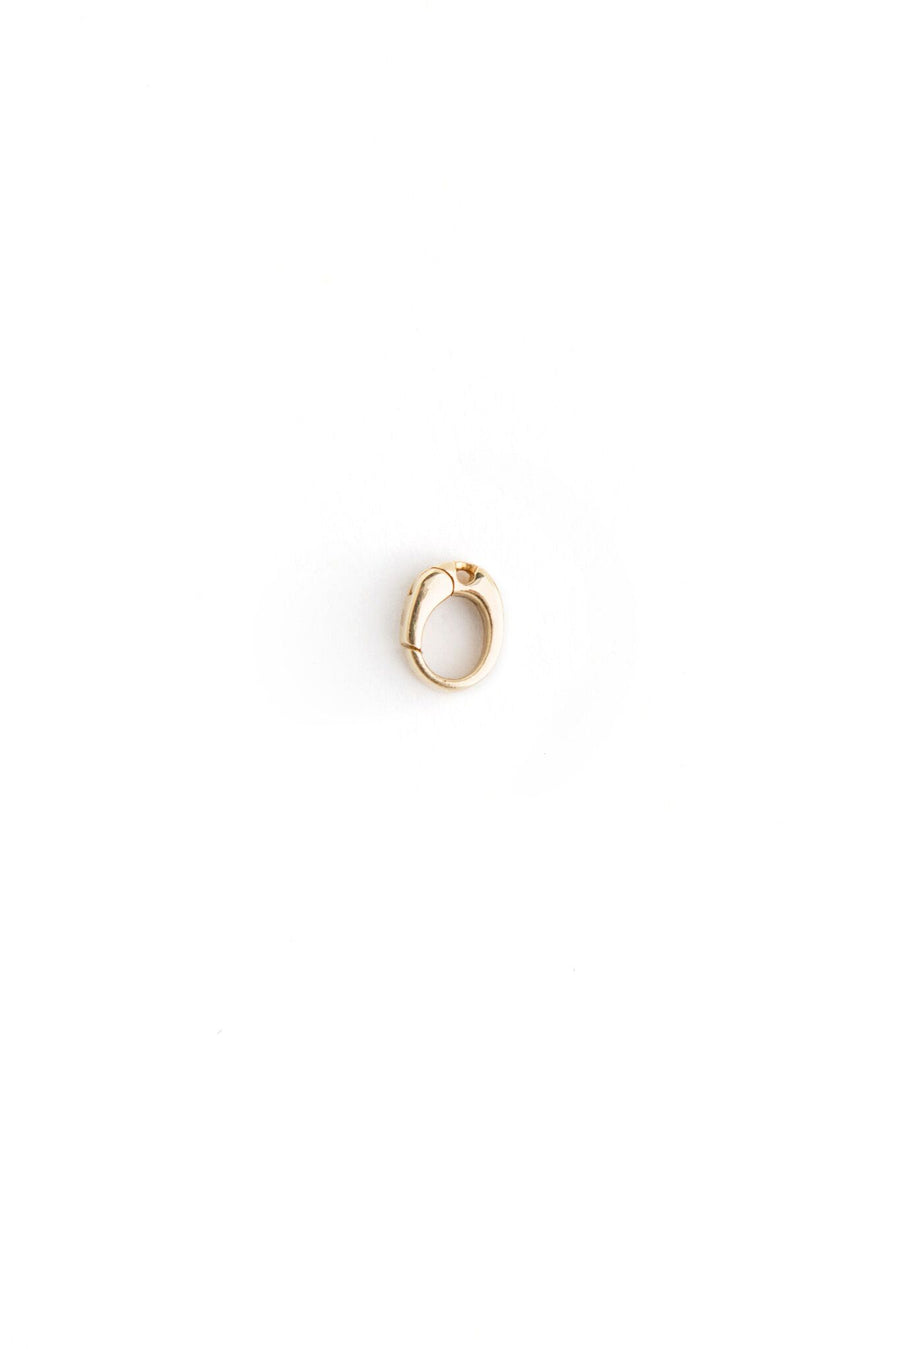 18K Yellow Gold Single Hinged Adaptor for Charm